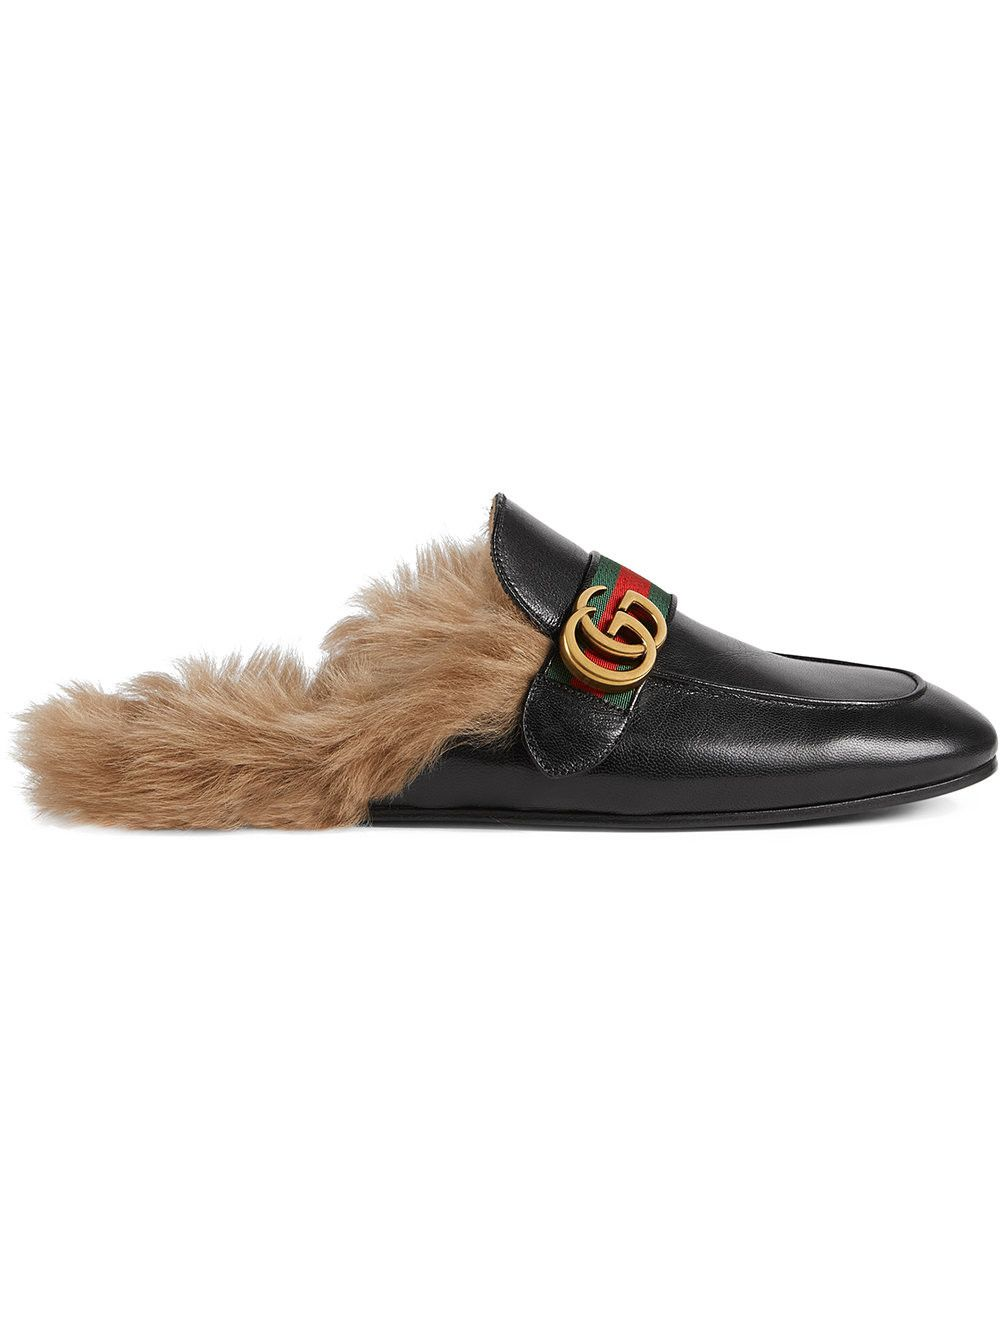 569eaa1f6 GUCCI Princetown Leather Slipper With Double G.  gucci  shoes ...